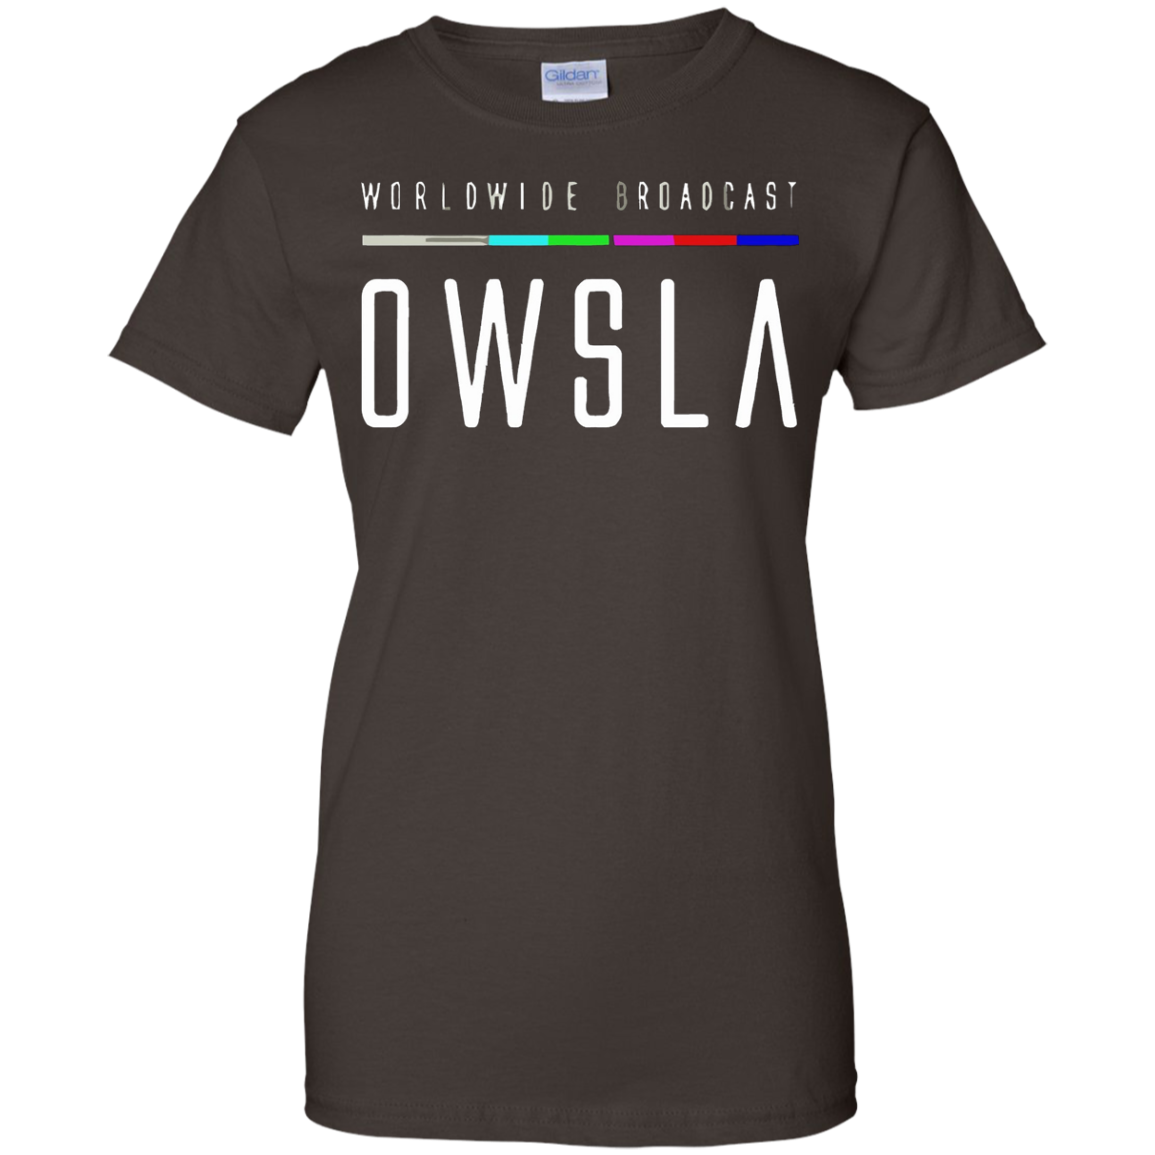 Men's OWSLA World Wide Broadcast Various Artists T-shirt